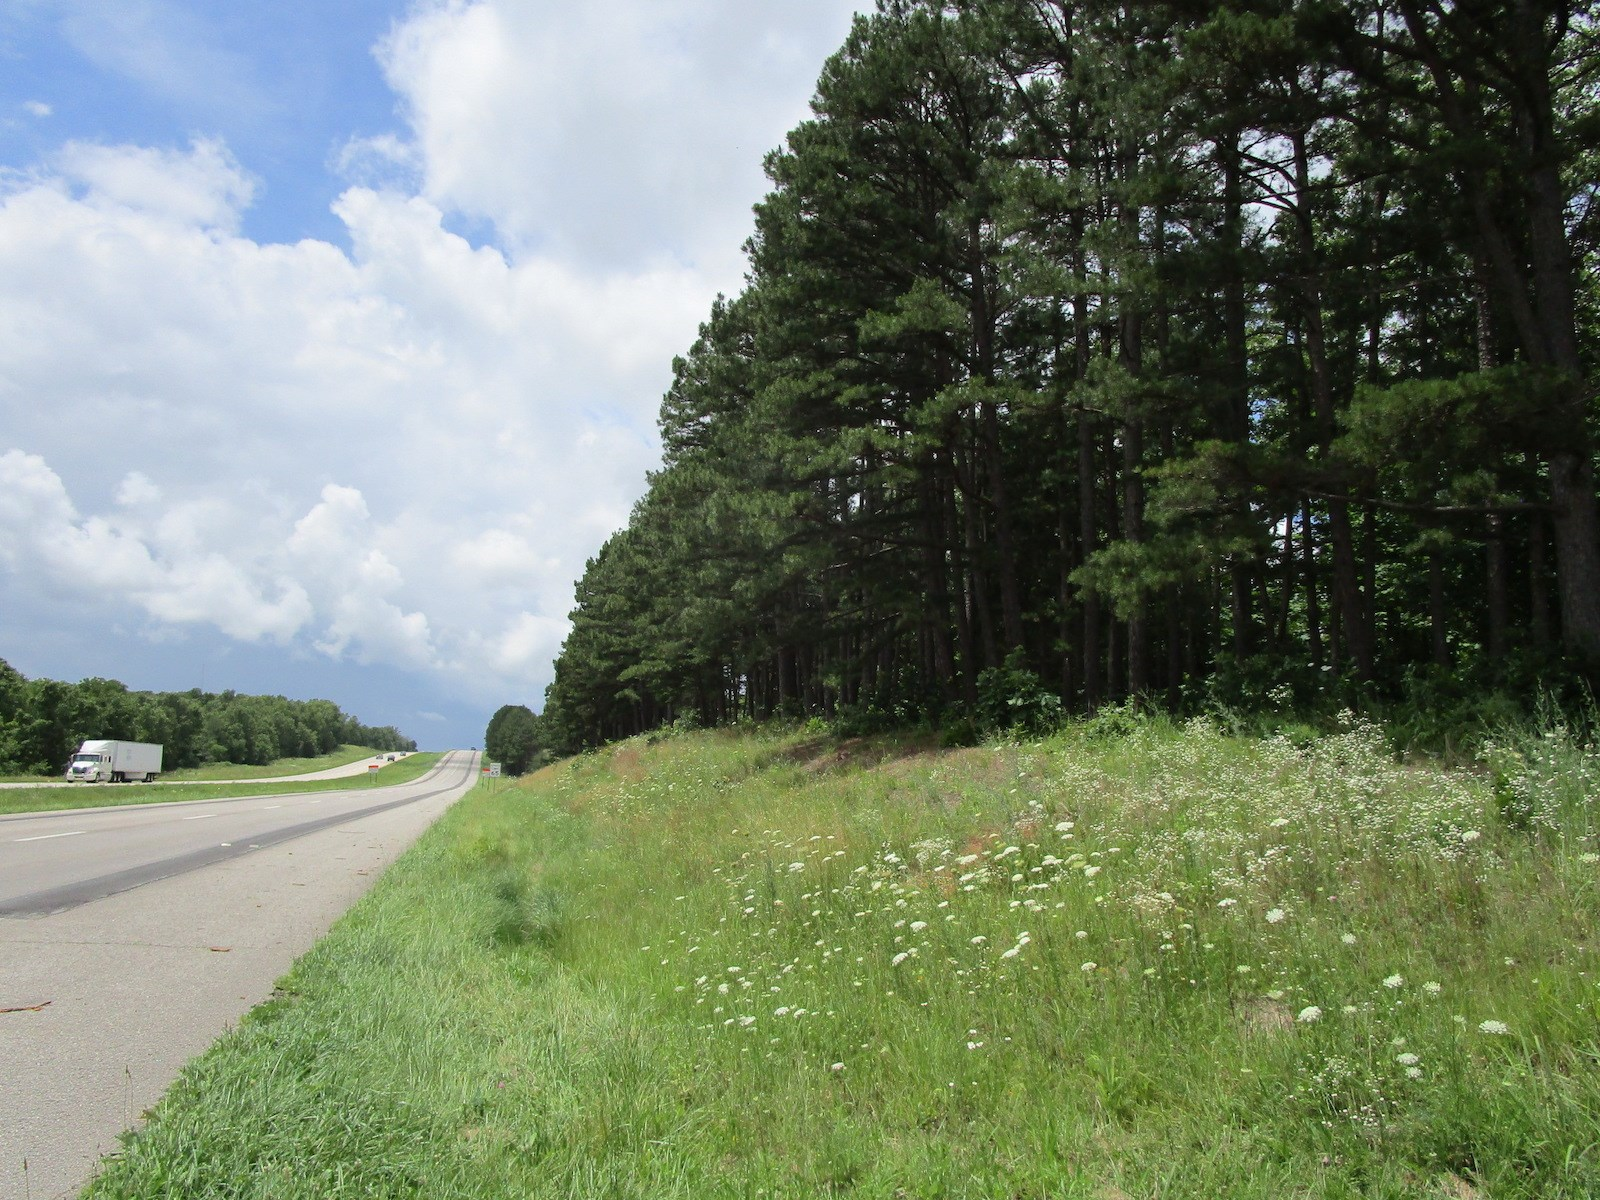 Land with US Highway Frontage in the Missouri Ozarks